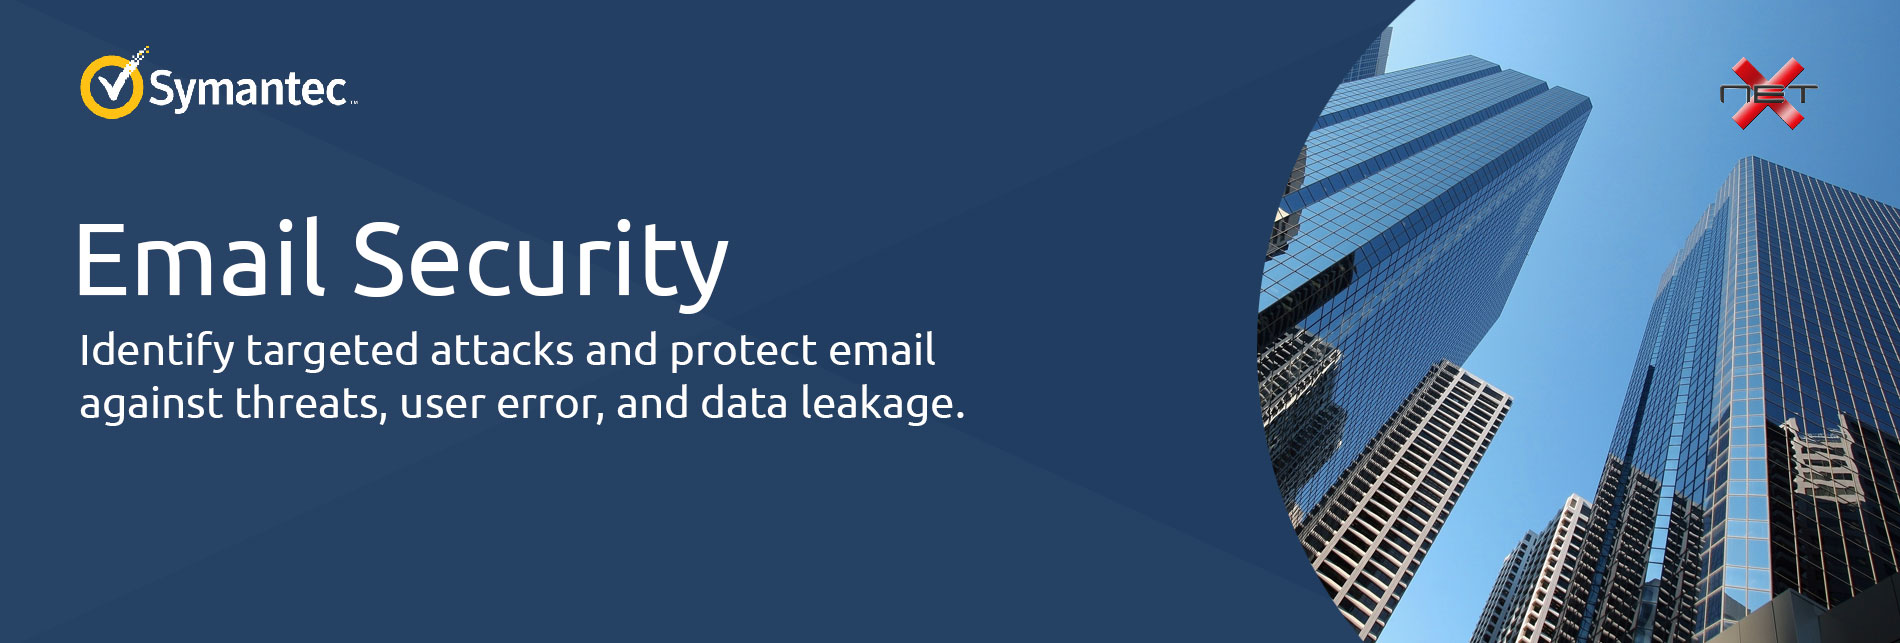 symantec-email-security-with netx banner